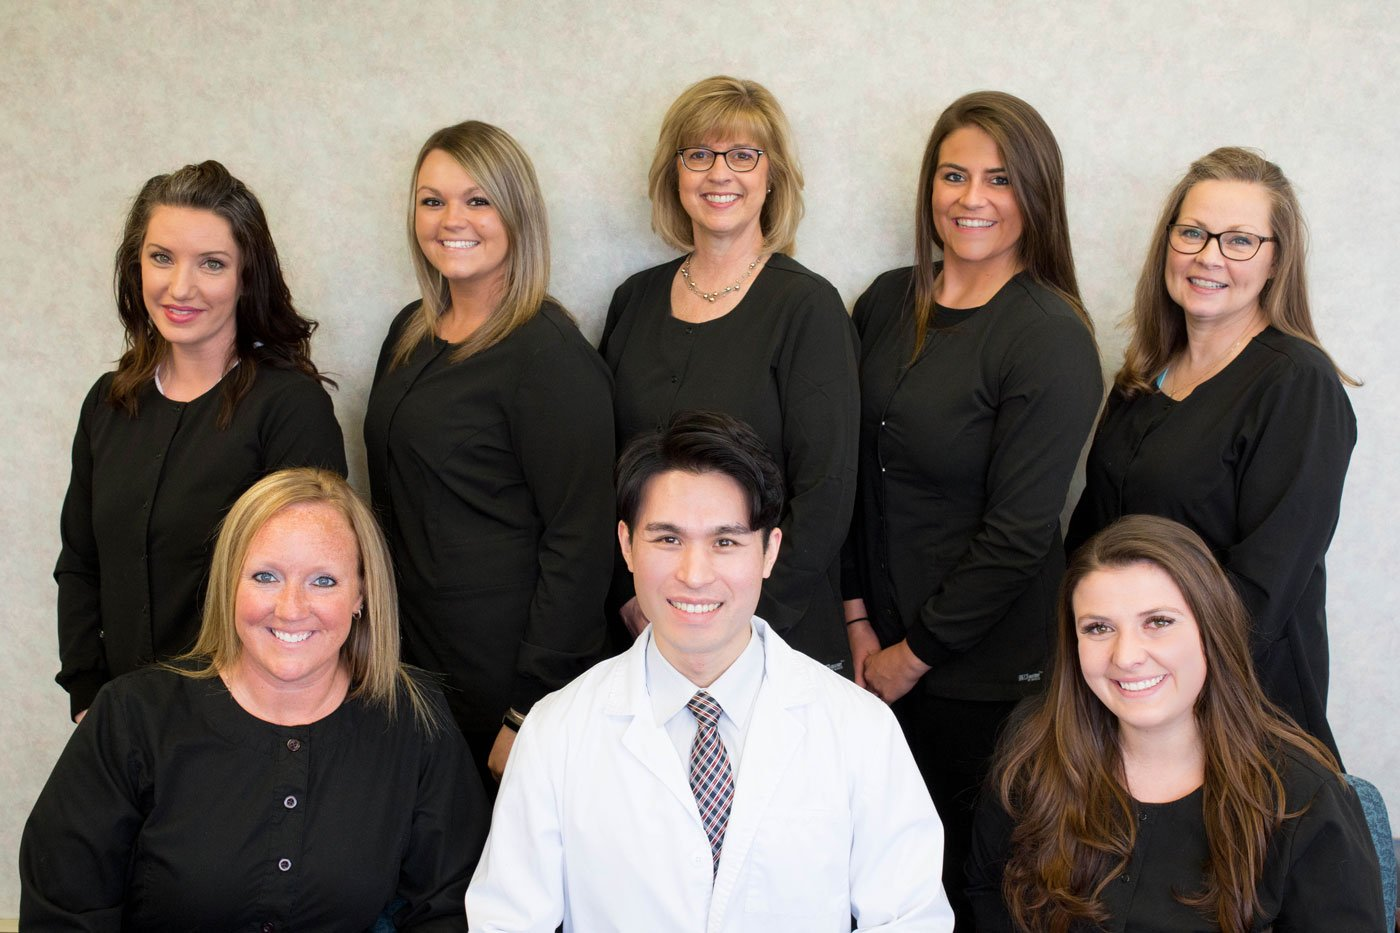 Local Family Dentist & Staff Members